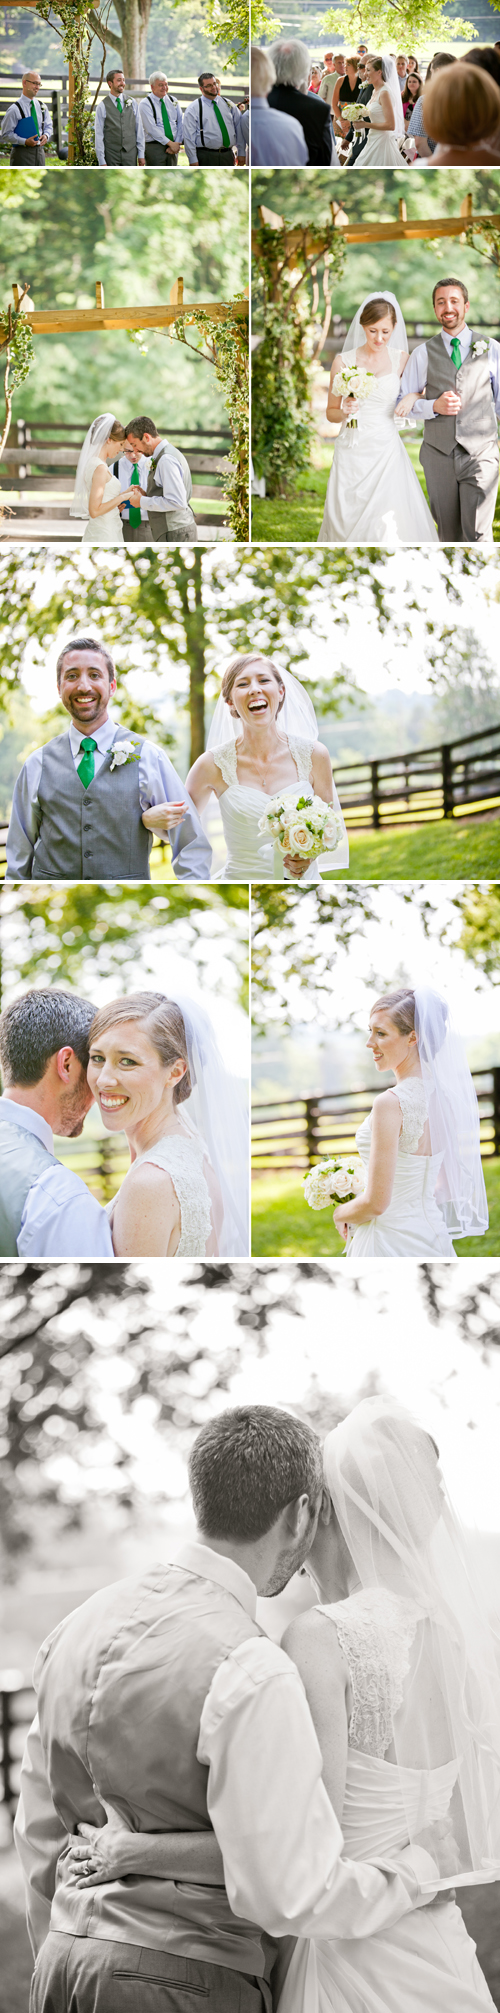 lily Glass Photography Southern Weddings 2